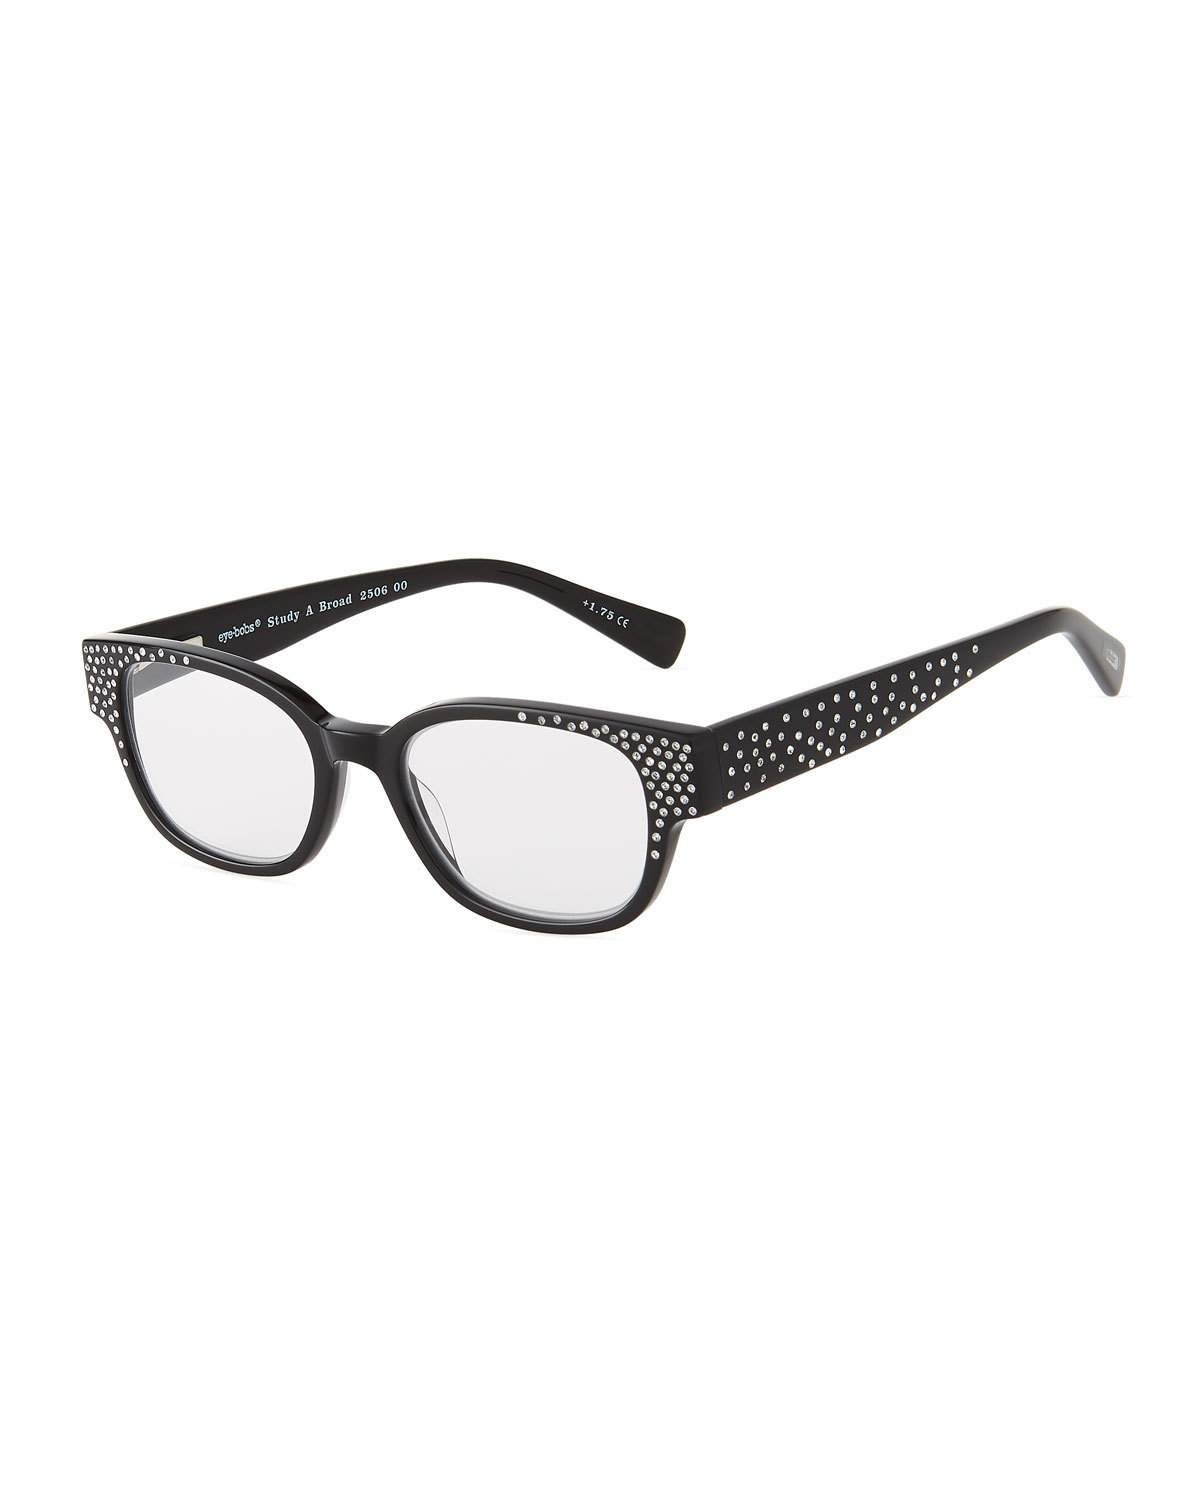 5a8f6d80a09 EYEBOBS STUDY ABROAD SQUARE ACETATE READING GLASSES